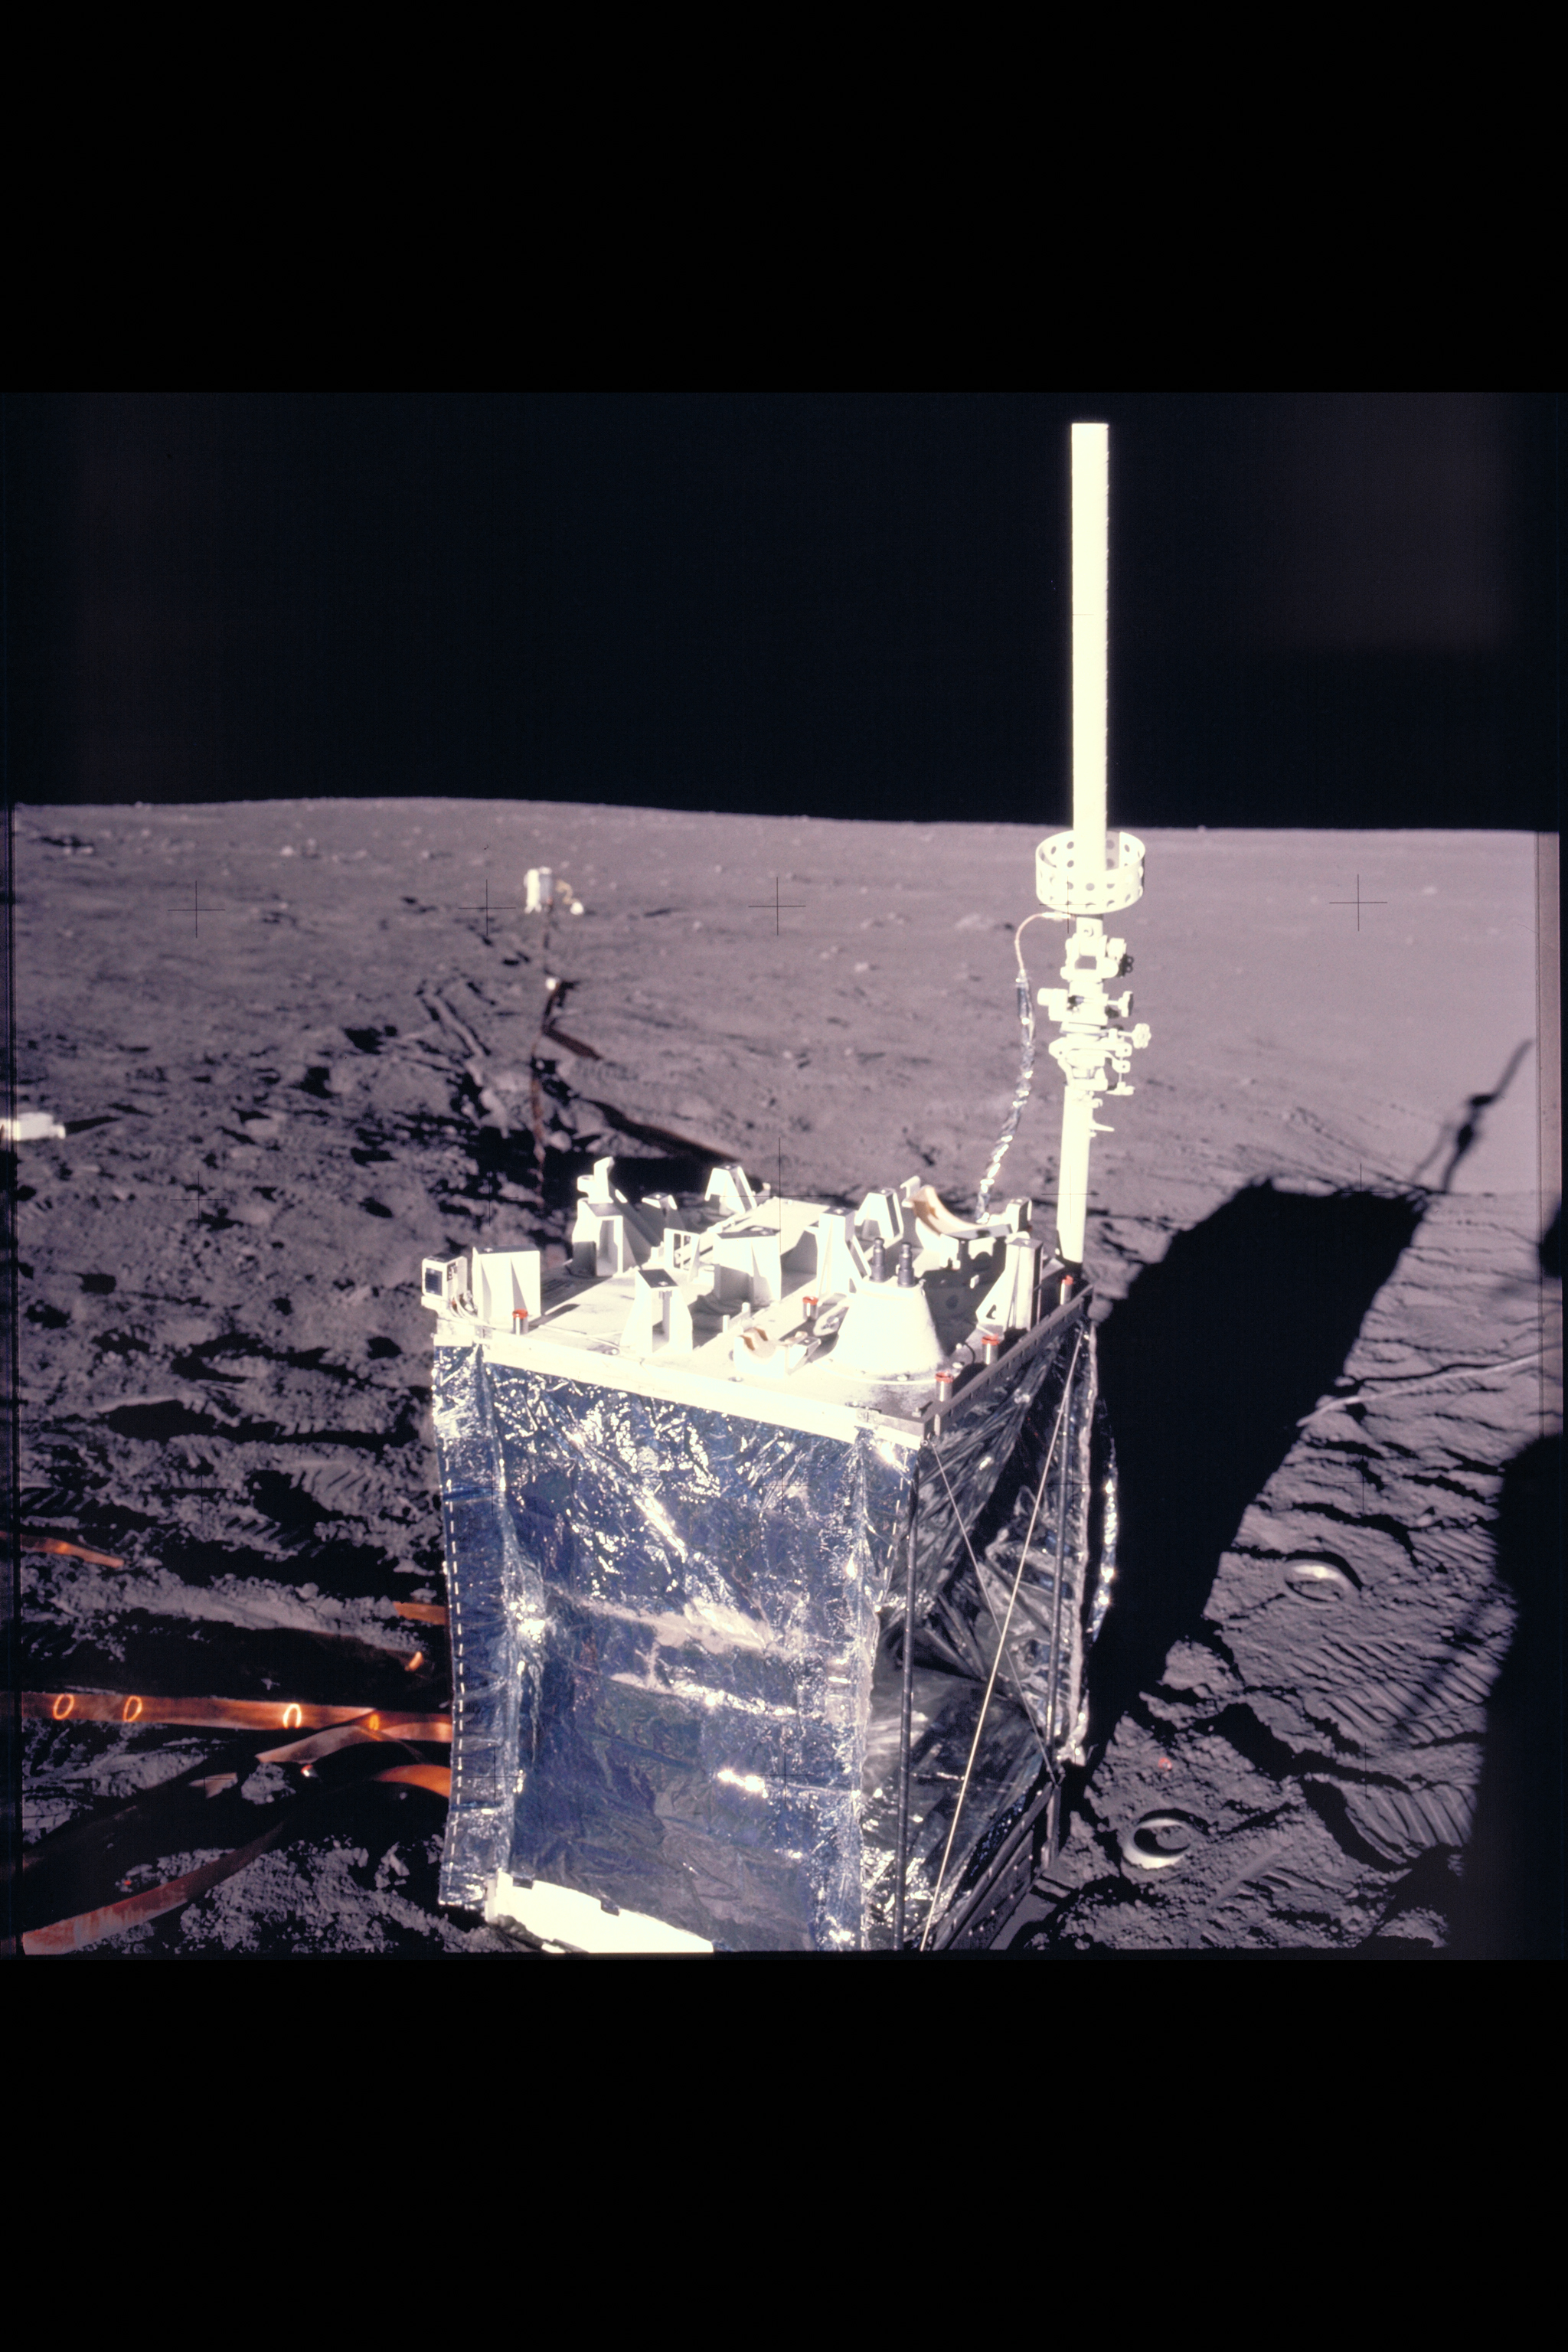 Apollo Crew landing site showing deployment of ALSEP Apollo Lunar Surface expeiments package Moon Surface Spacewalk Extravehicular Activity